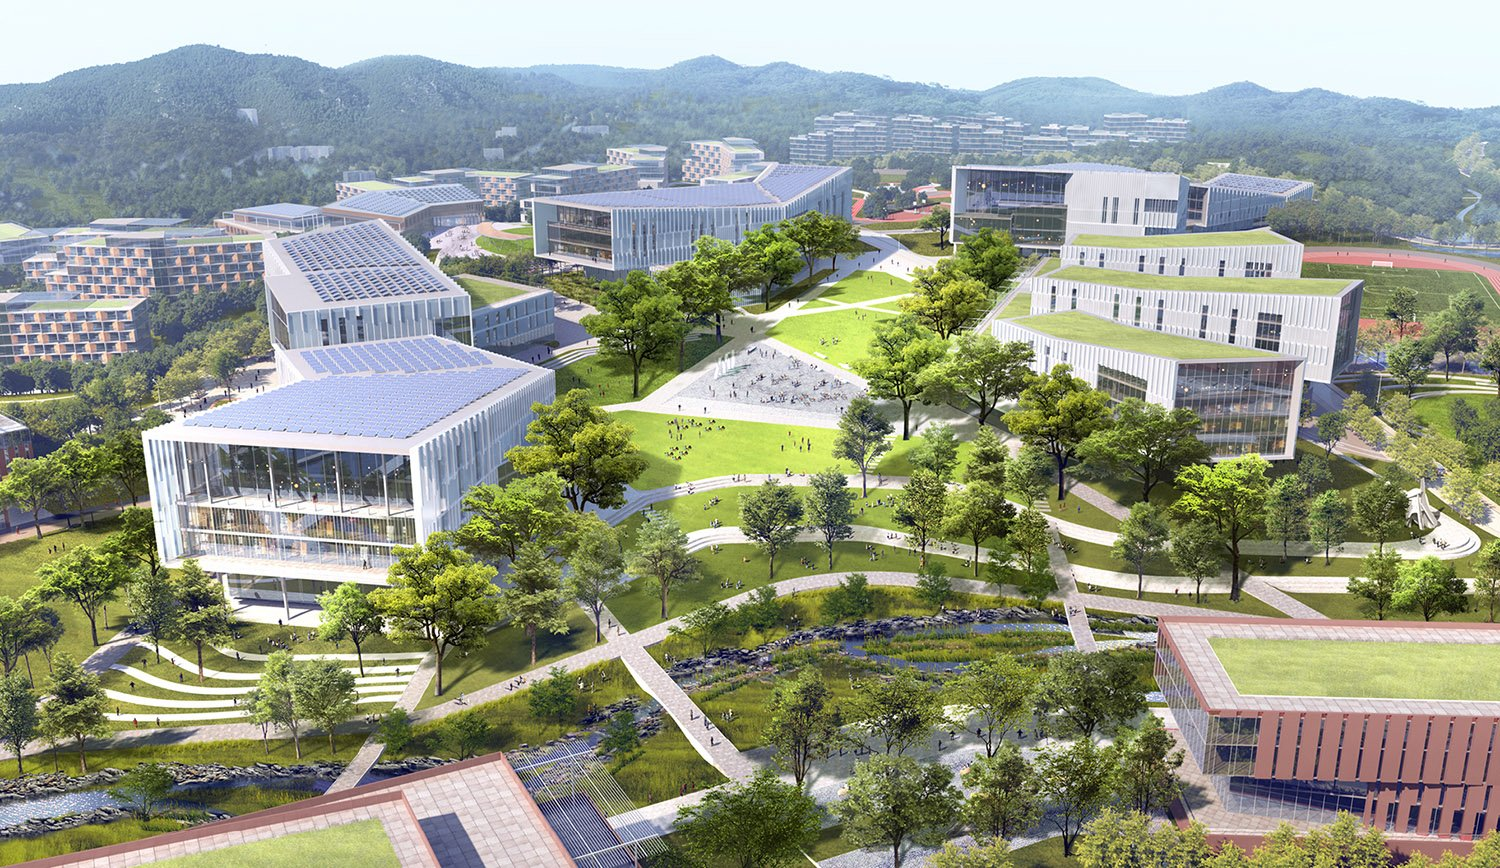 Buildings and key program destinations are within a 5-minute walk, enhancing the vibrancy of the campus core and fostering a pedestrian-oriented environment. SASAKI